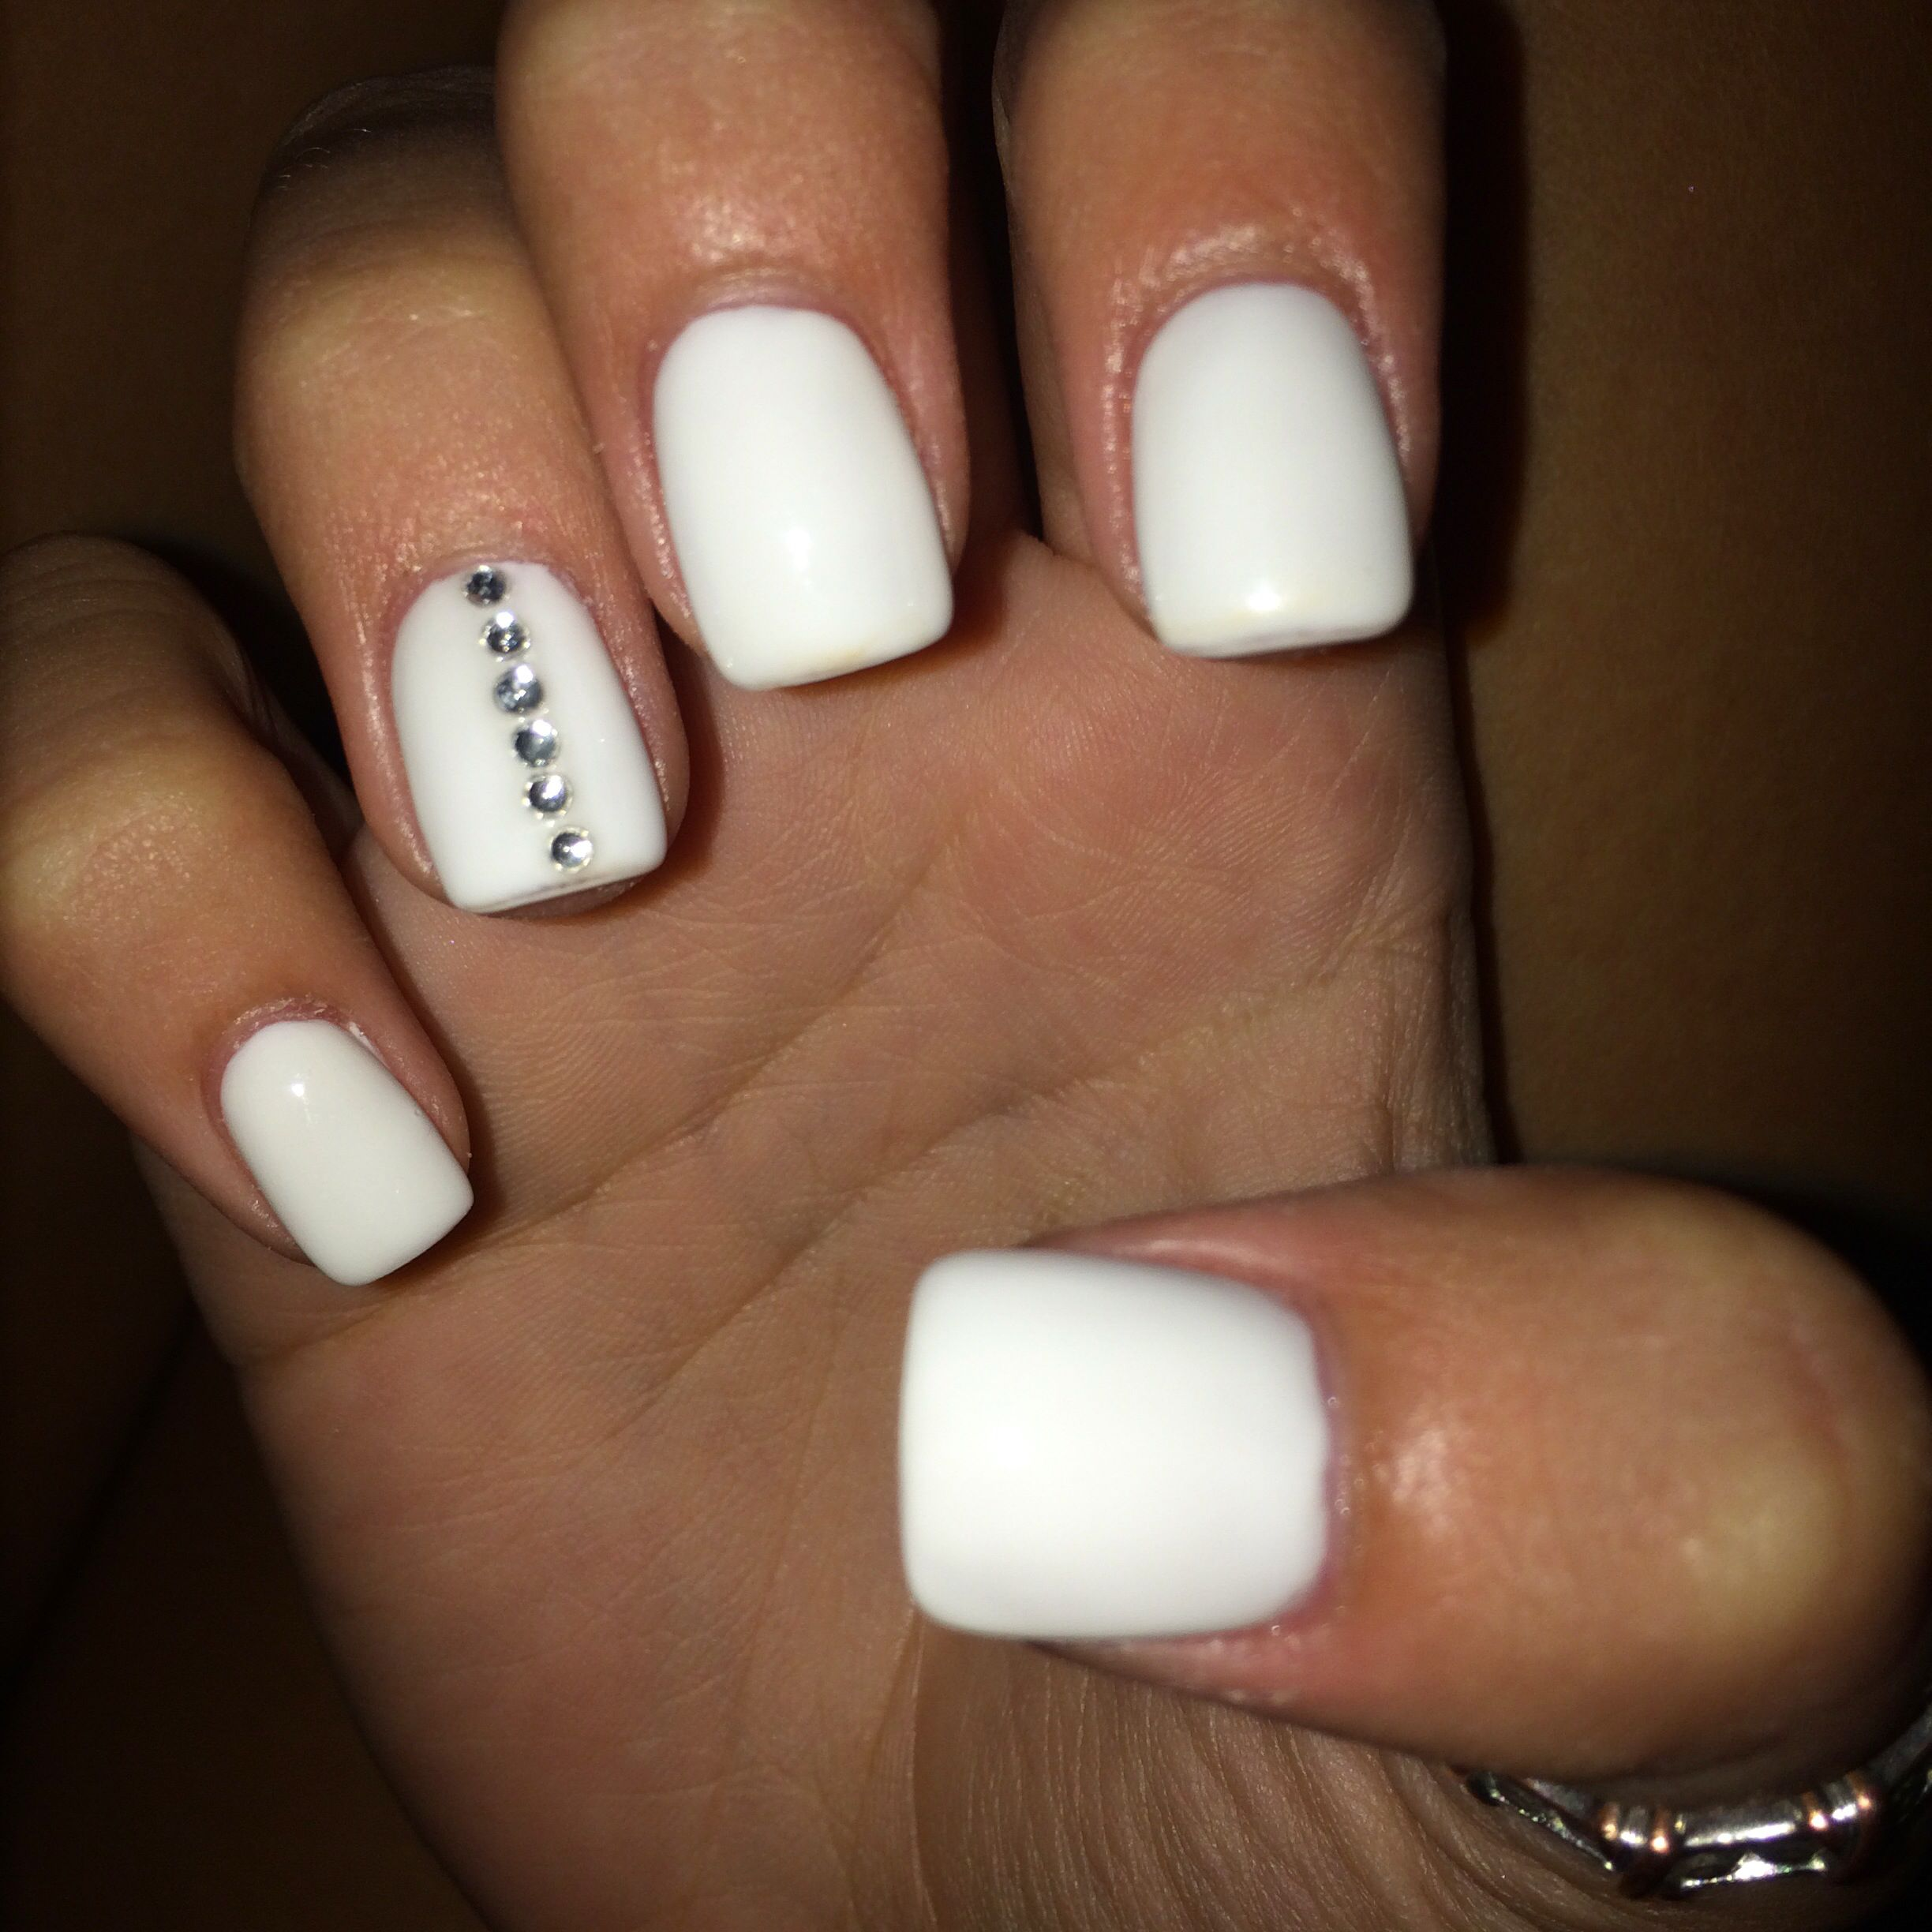 Nail Gems Designs Images - easy nail designs for beginners ...